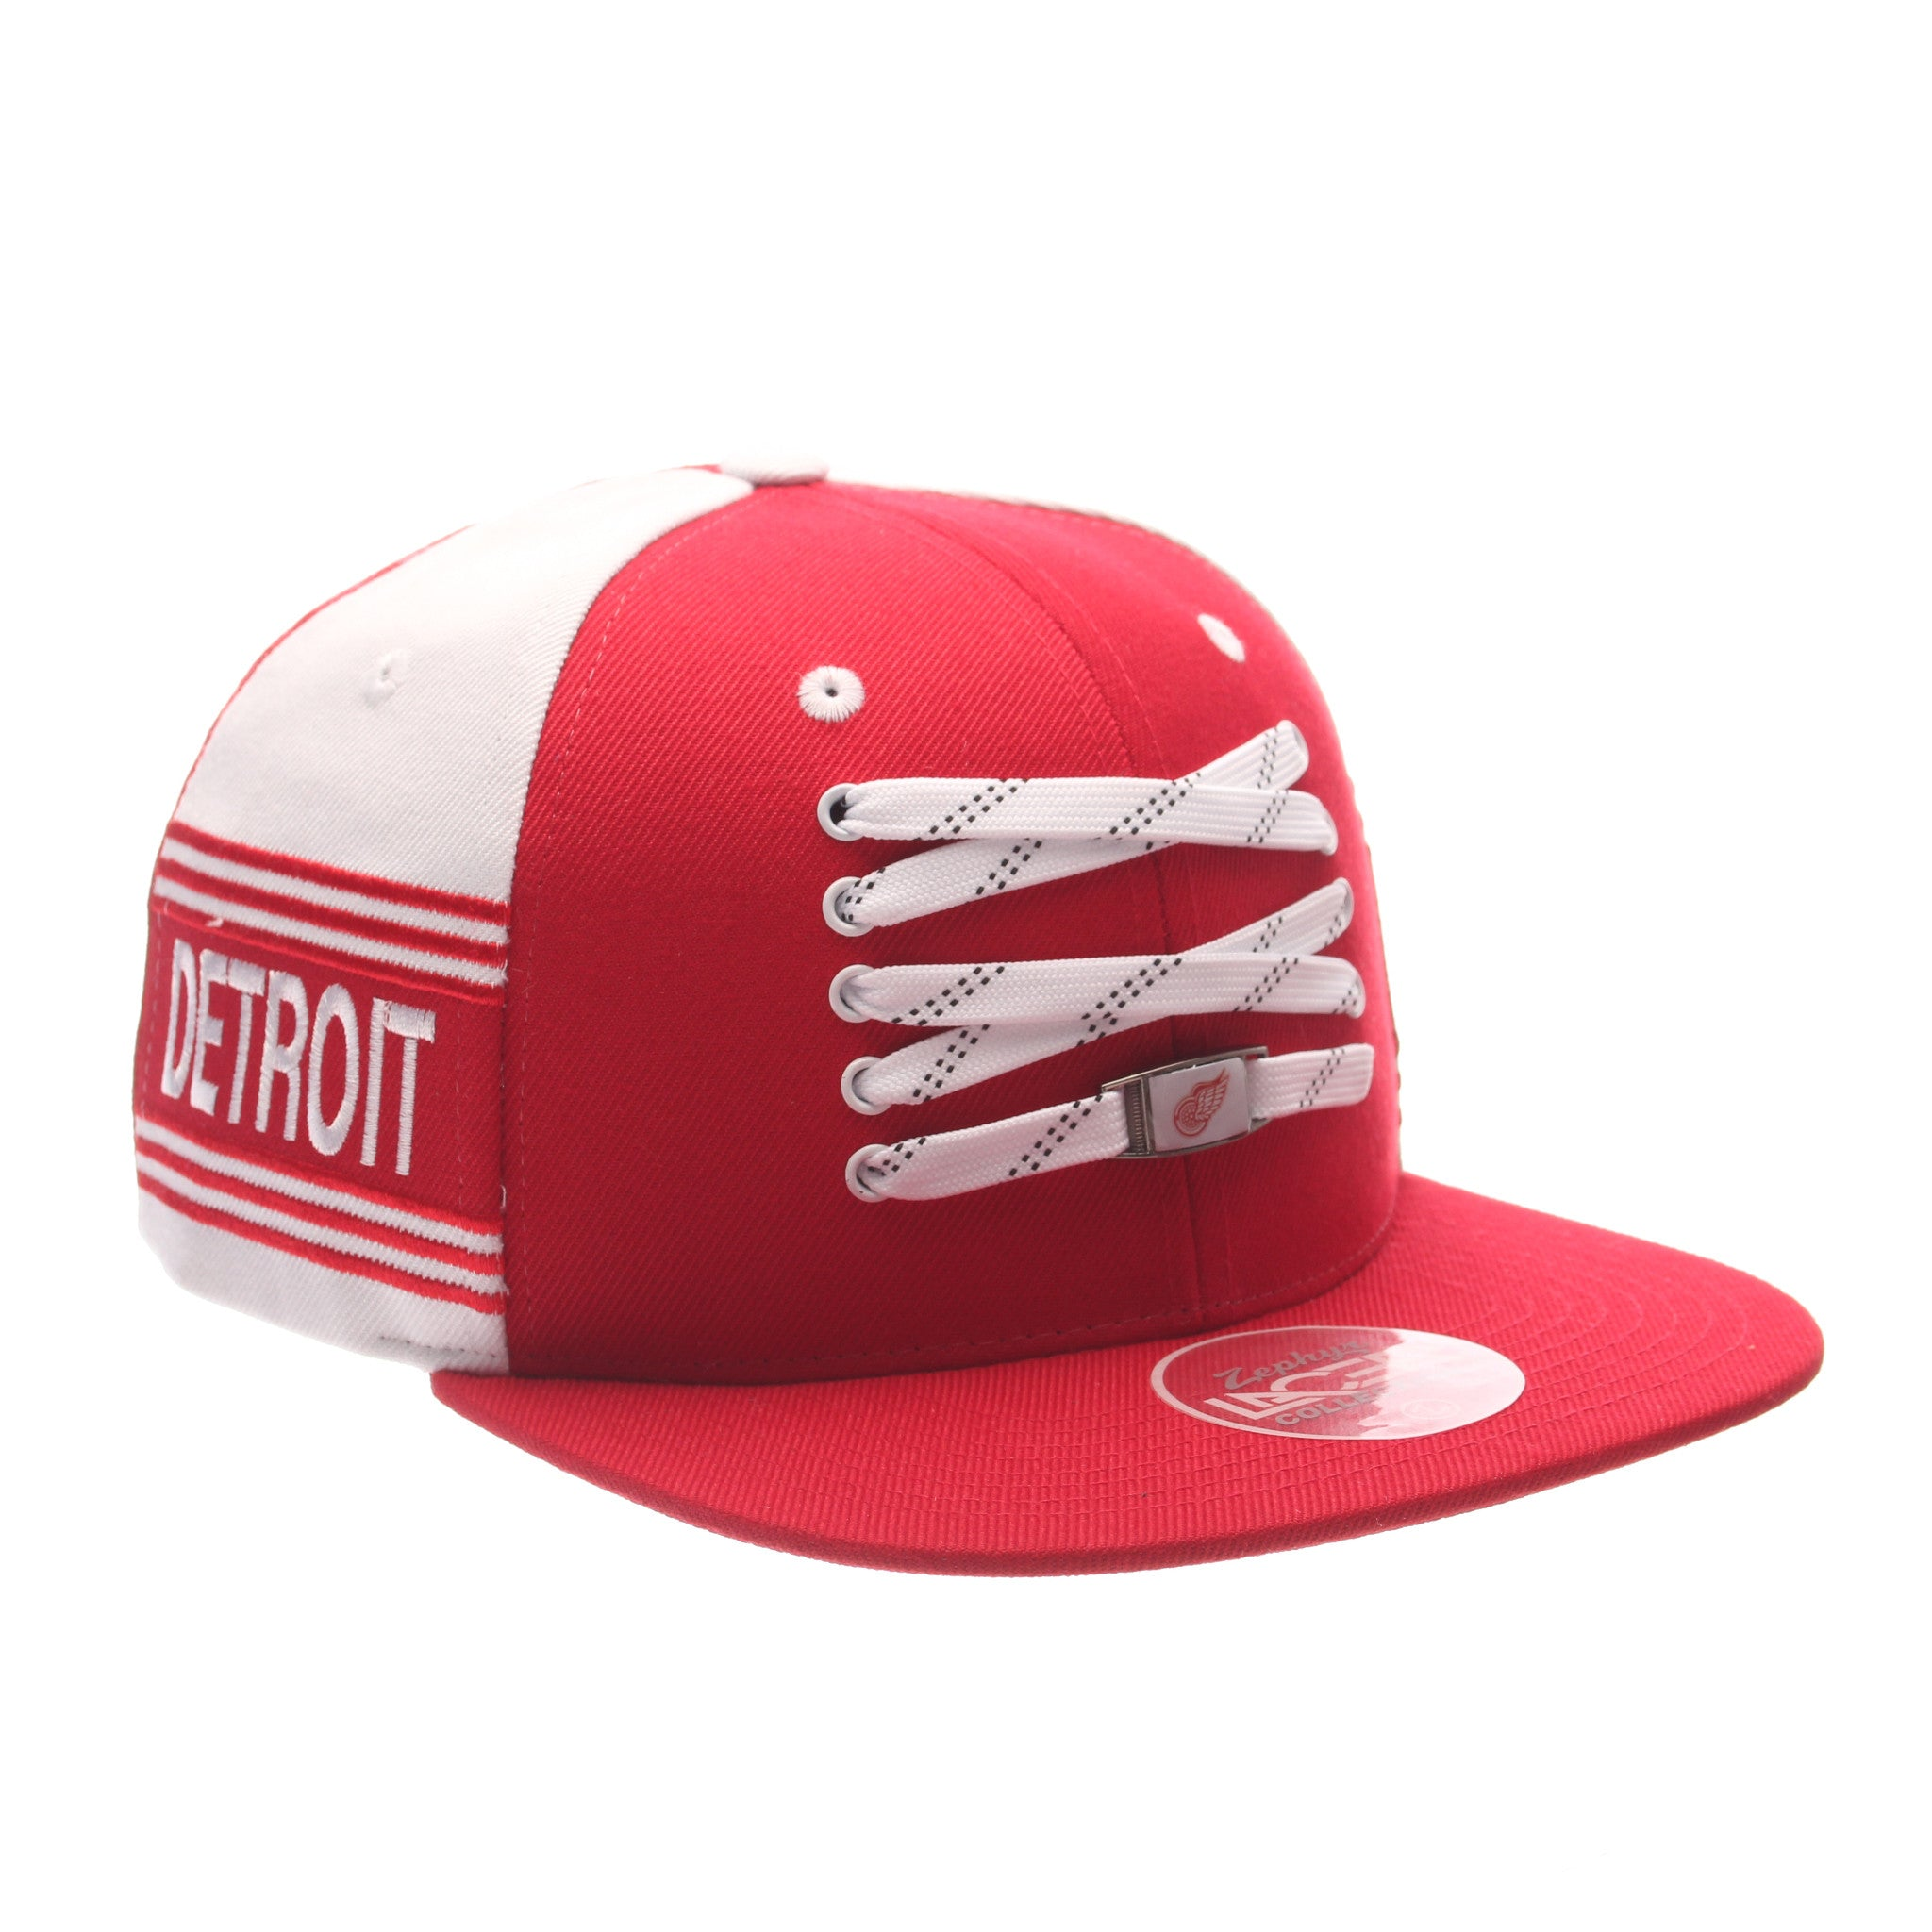 3a59b7731 ... coupon code for vintage detroit red wings original 6 snapback 6a5f7  b2f20